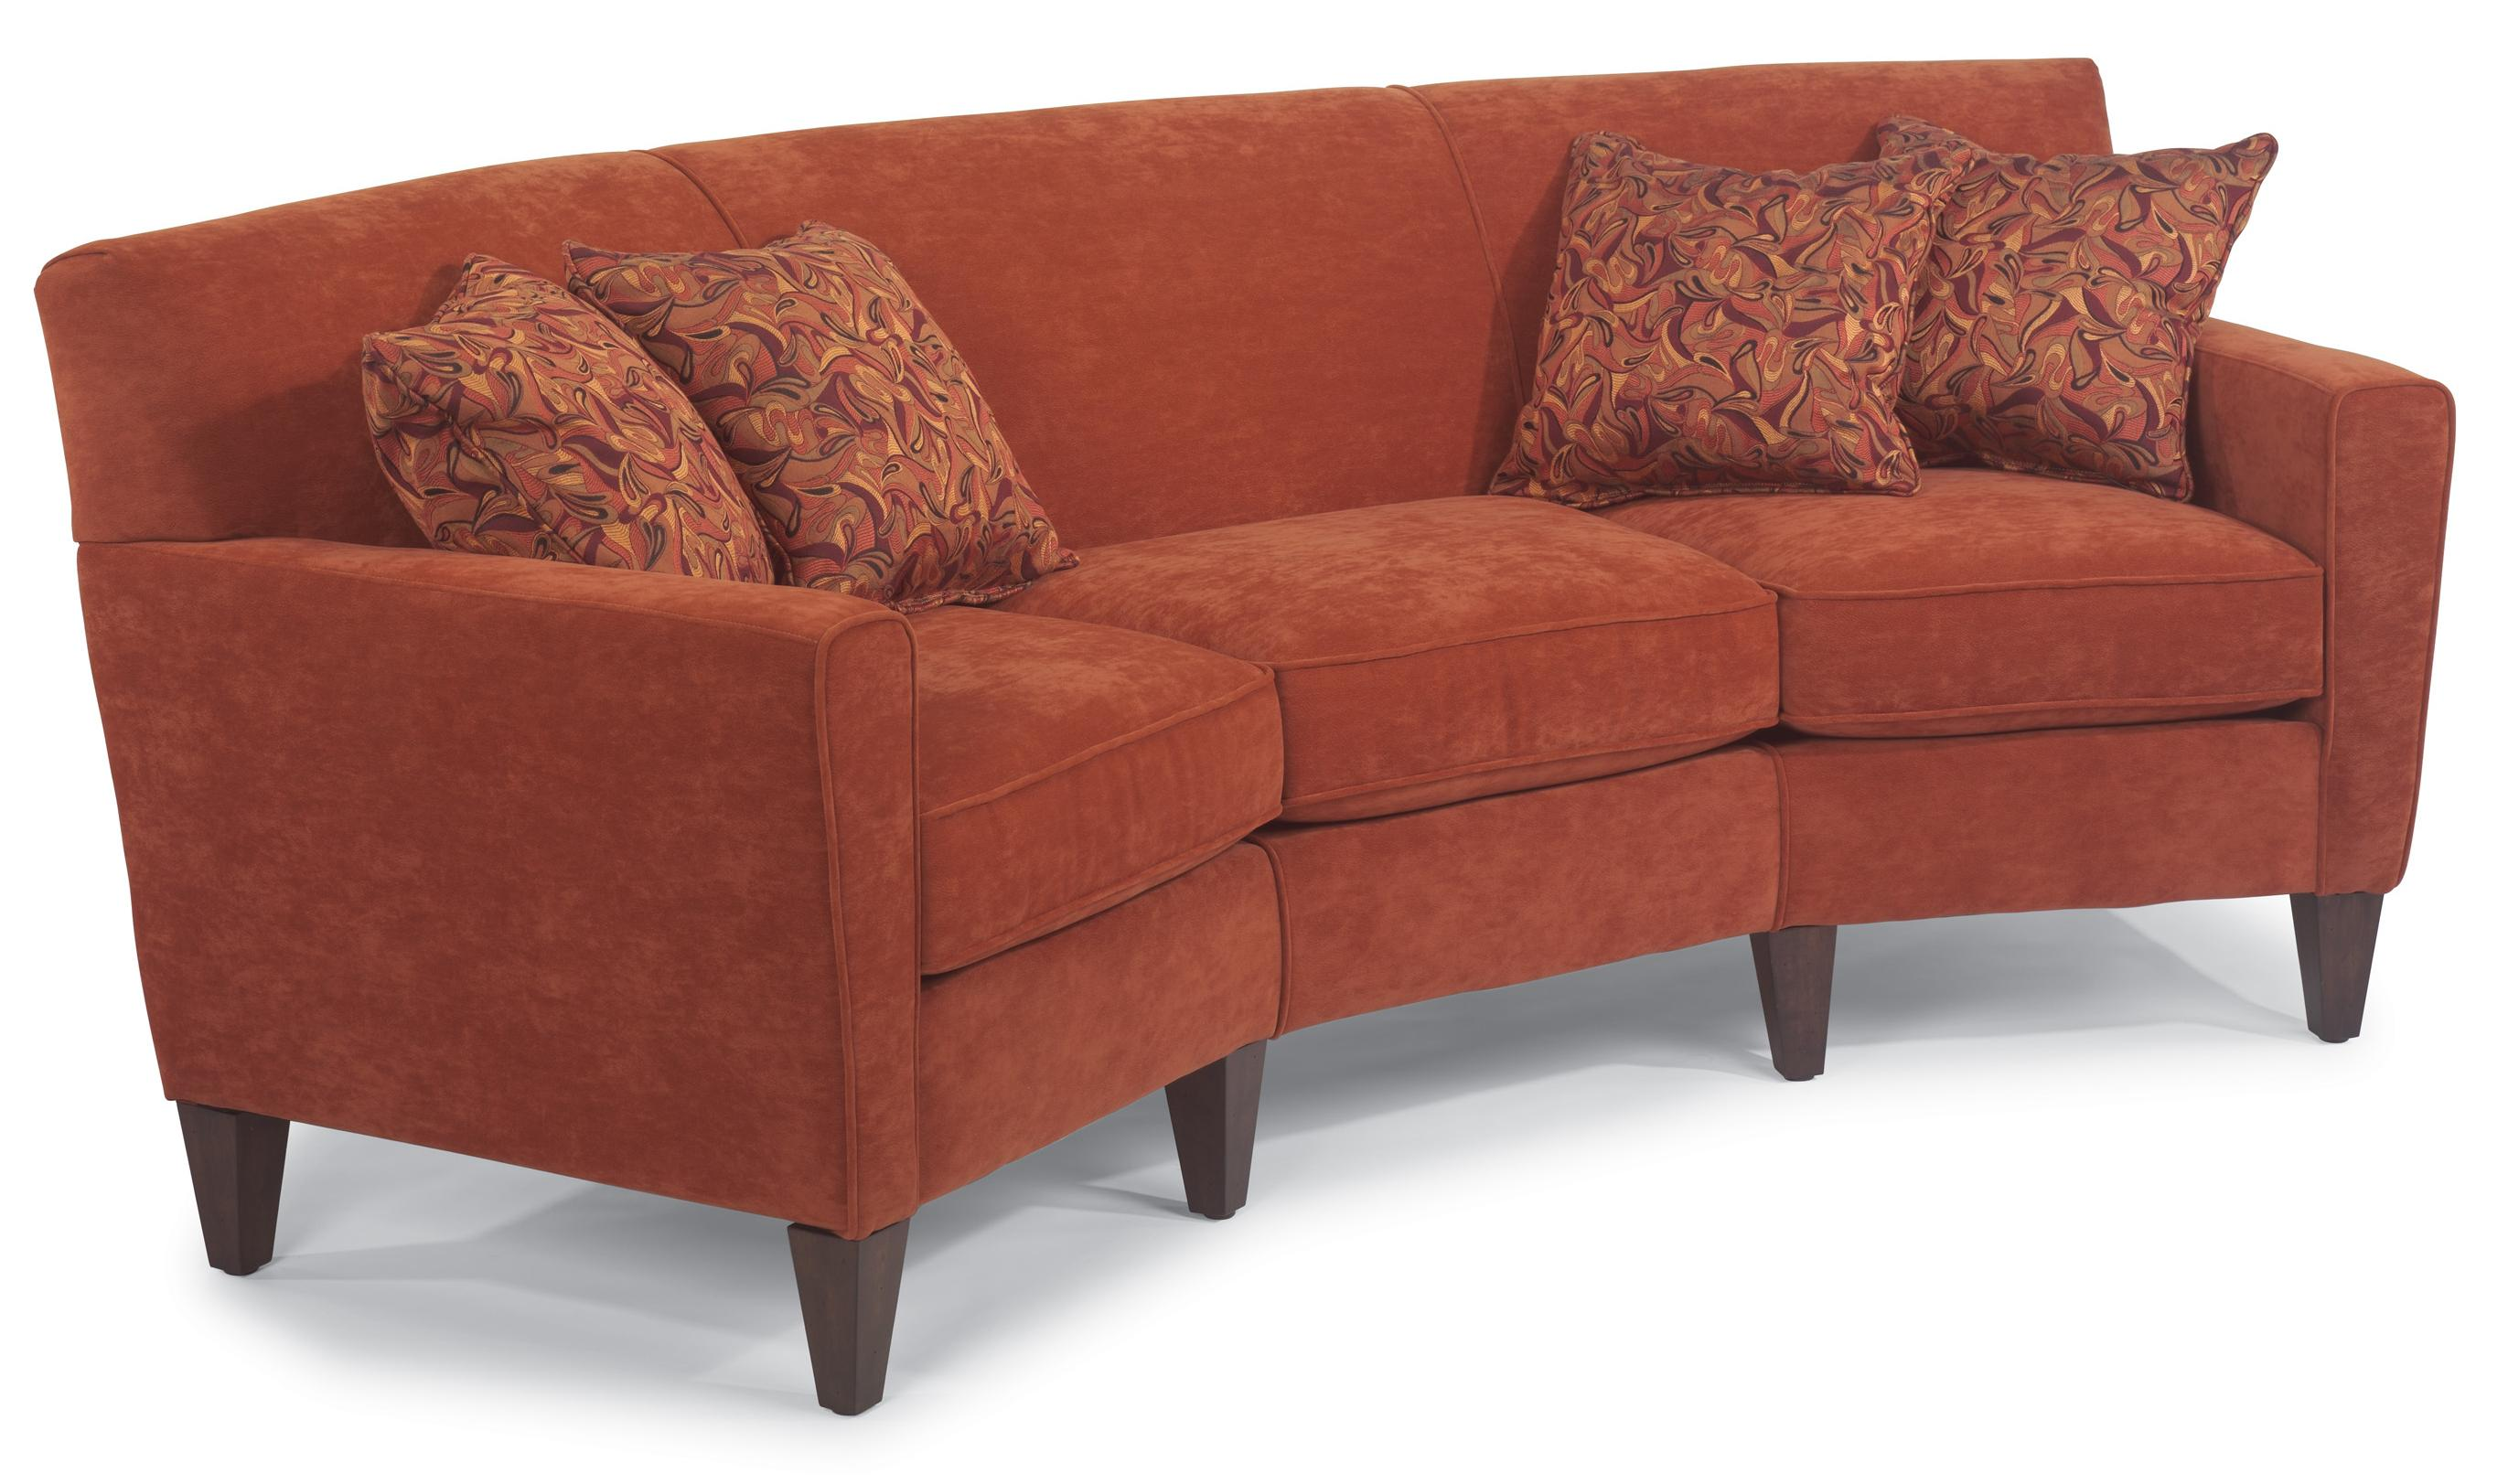 Justice Furniture From Missouri